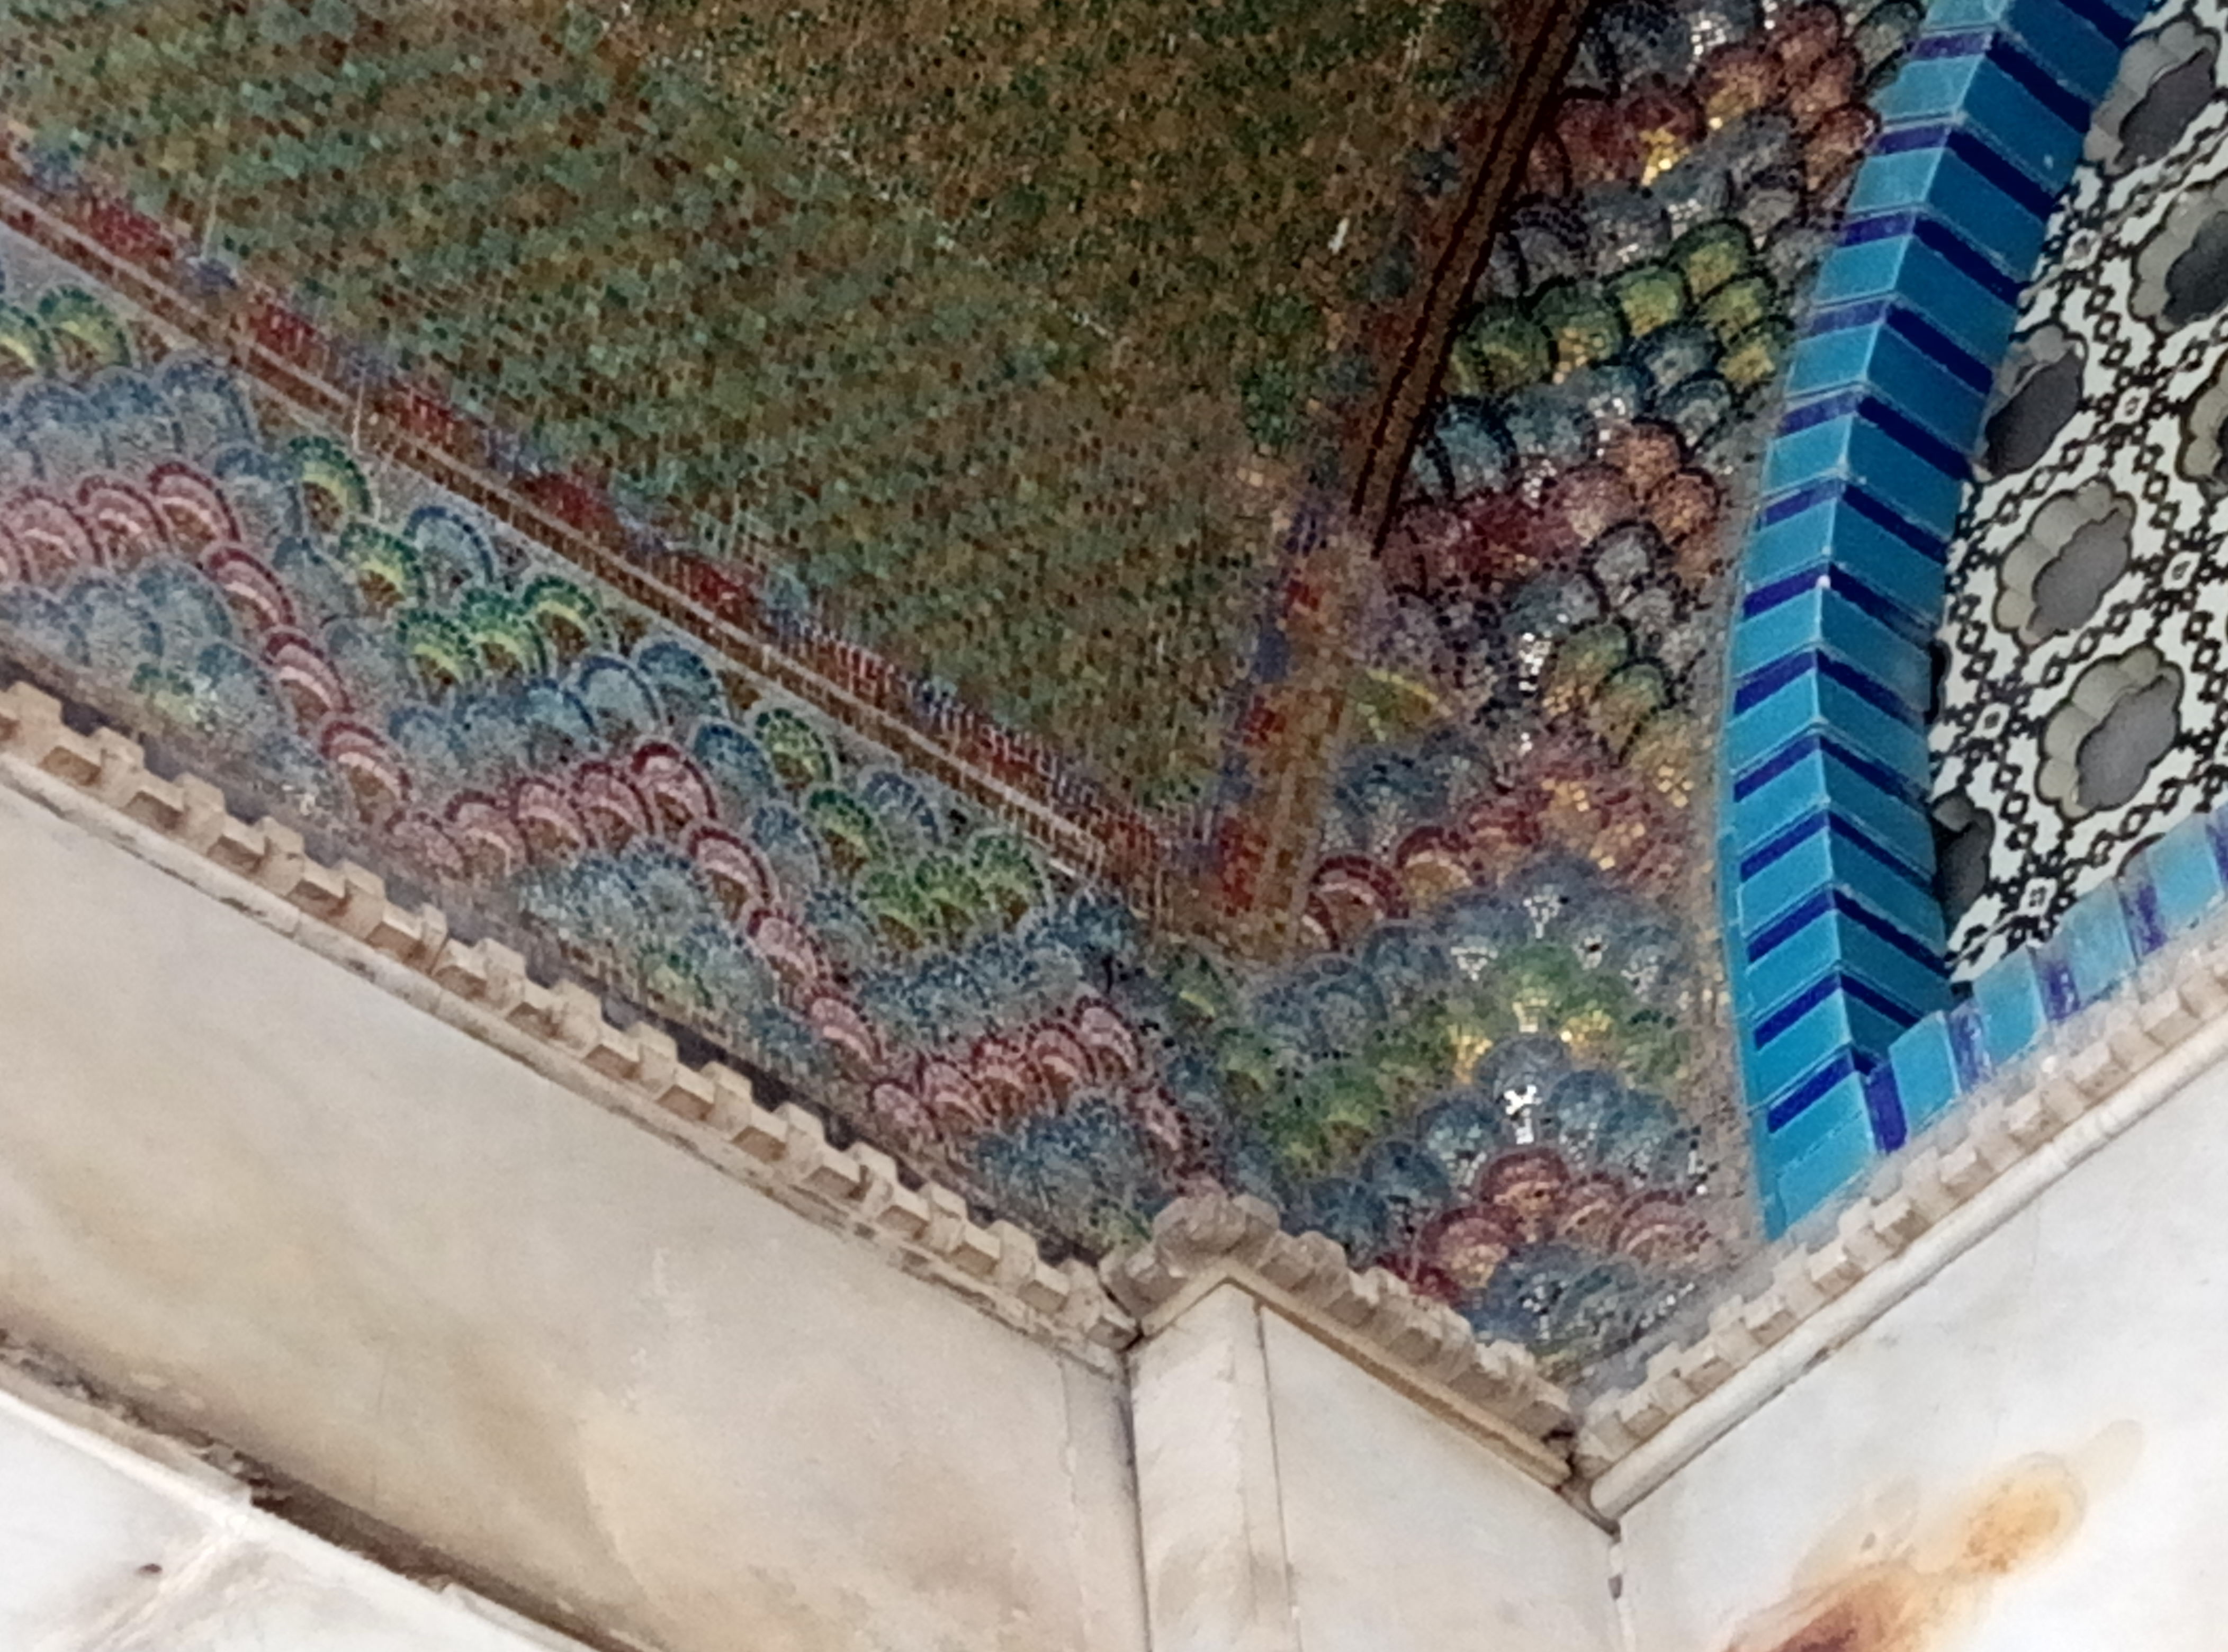 Awnings of the Dome of the Rock